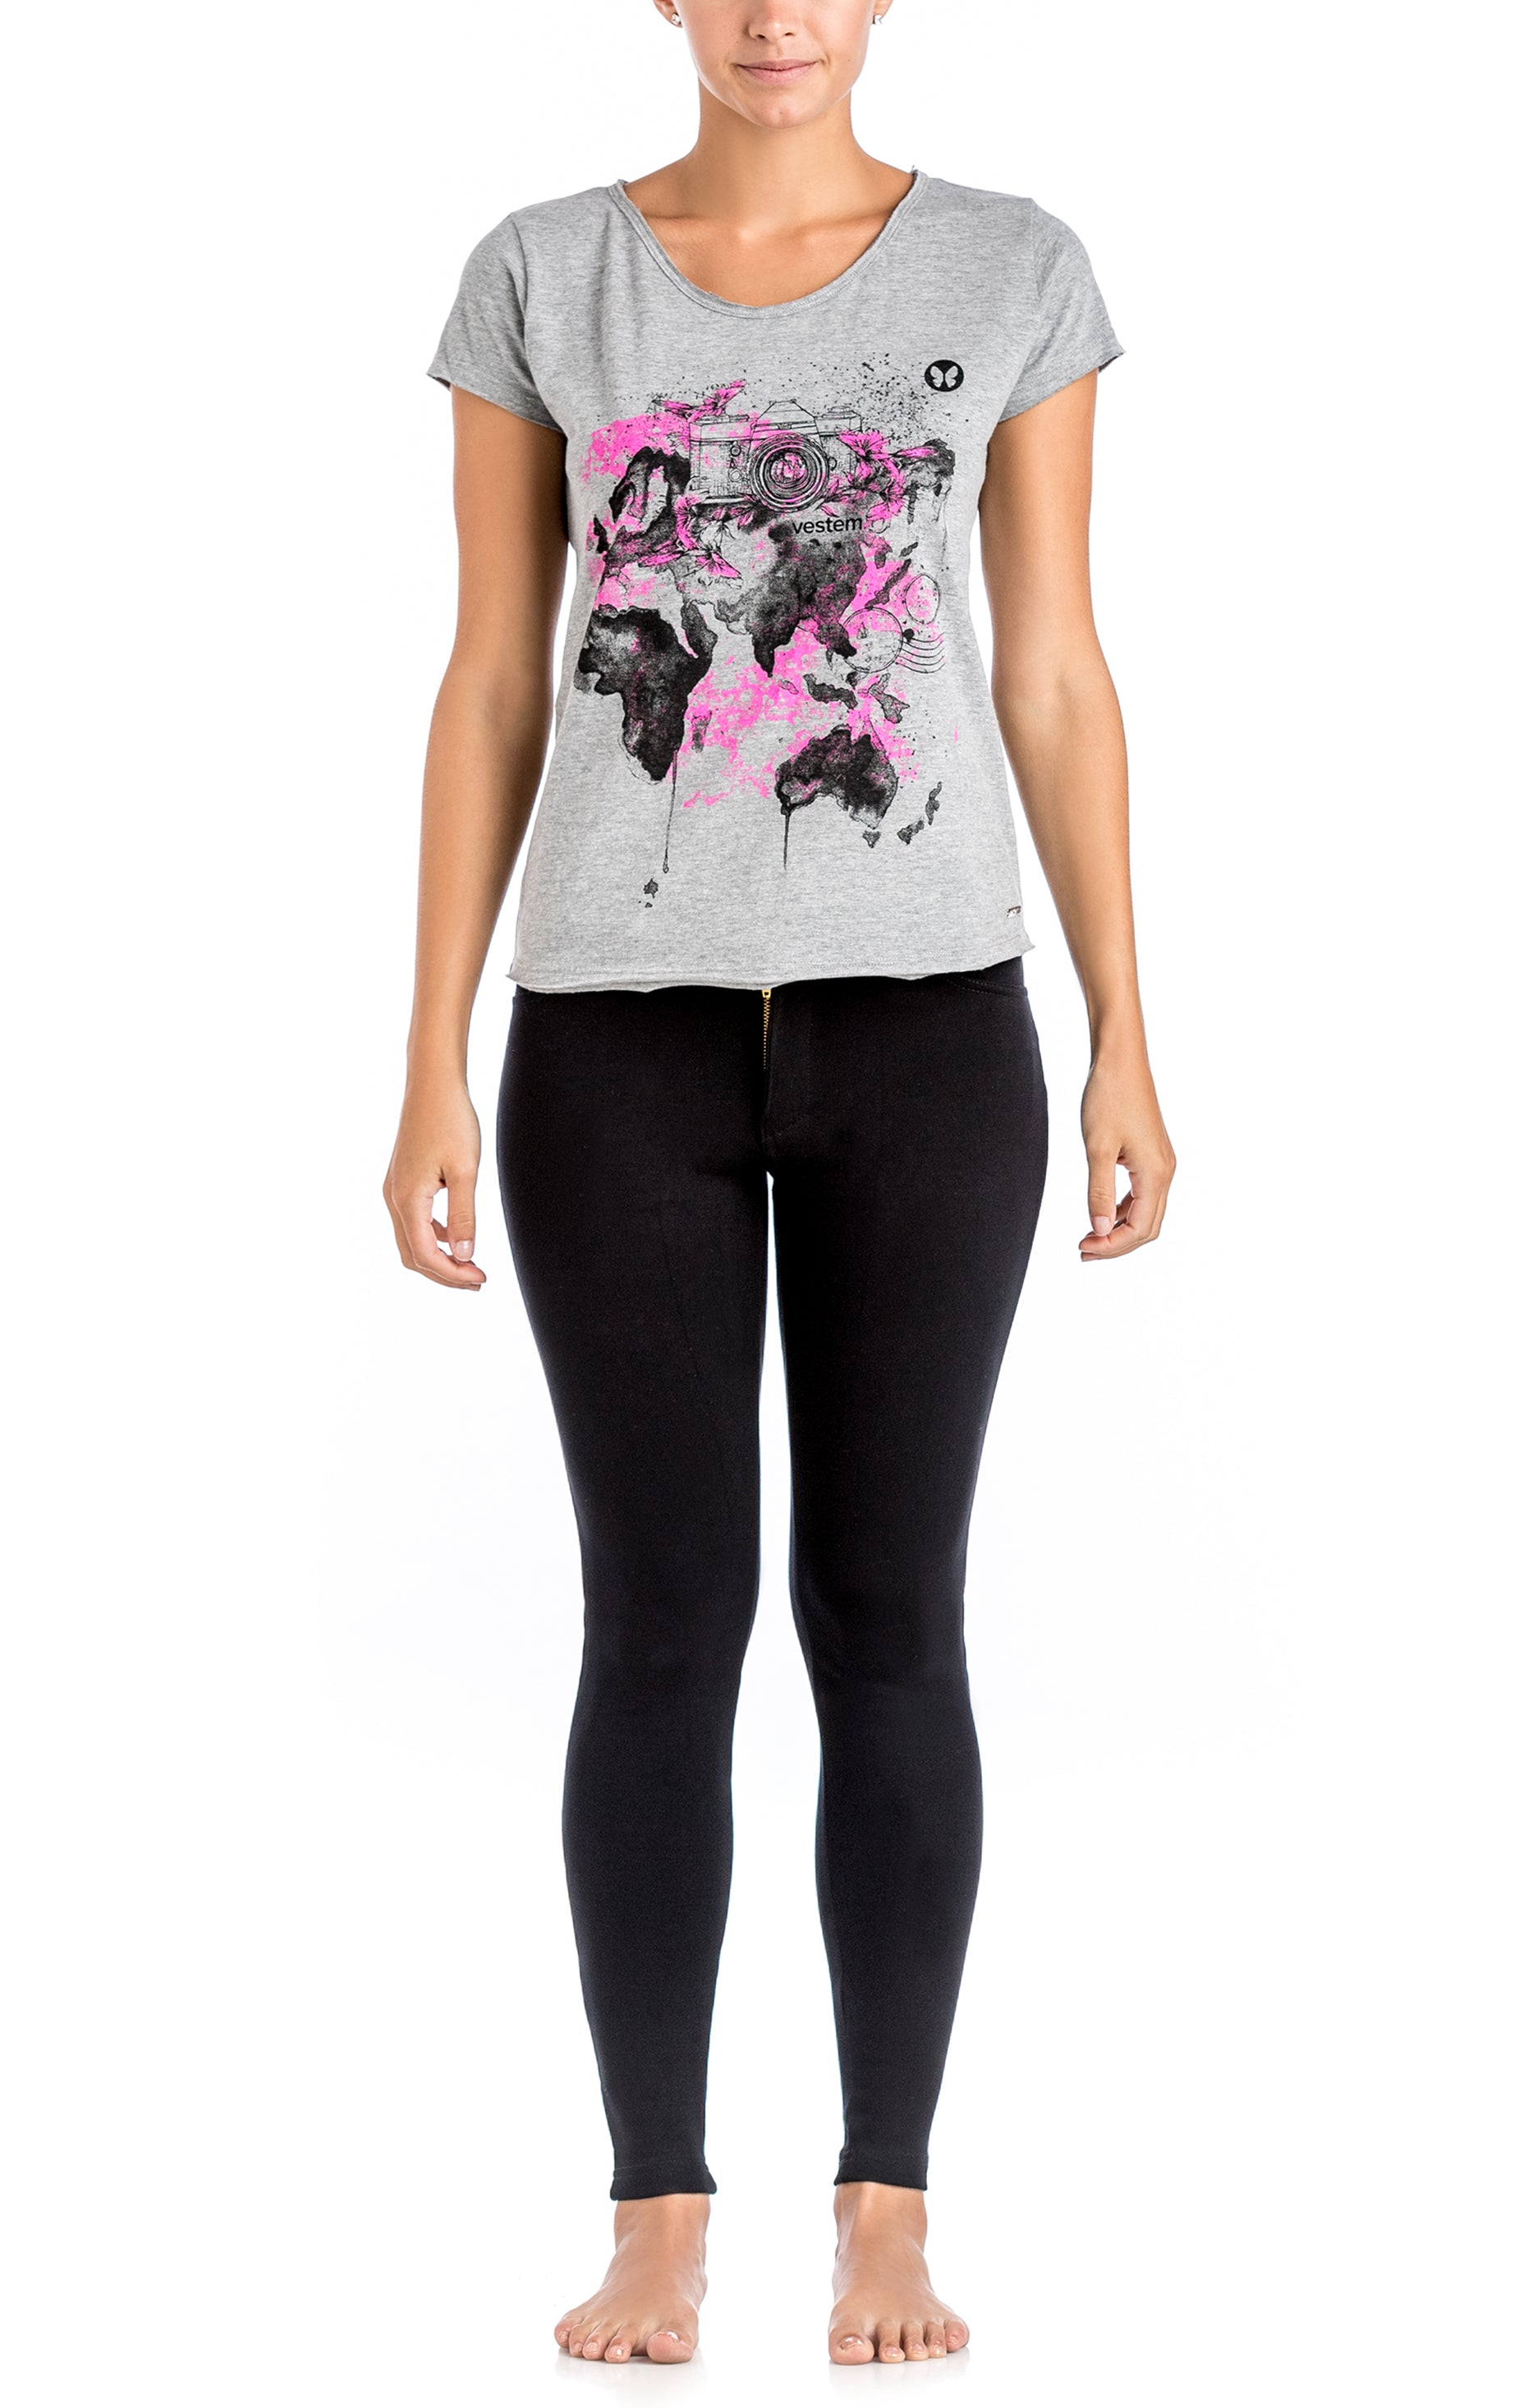 New Face Top - Workout Tops